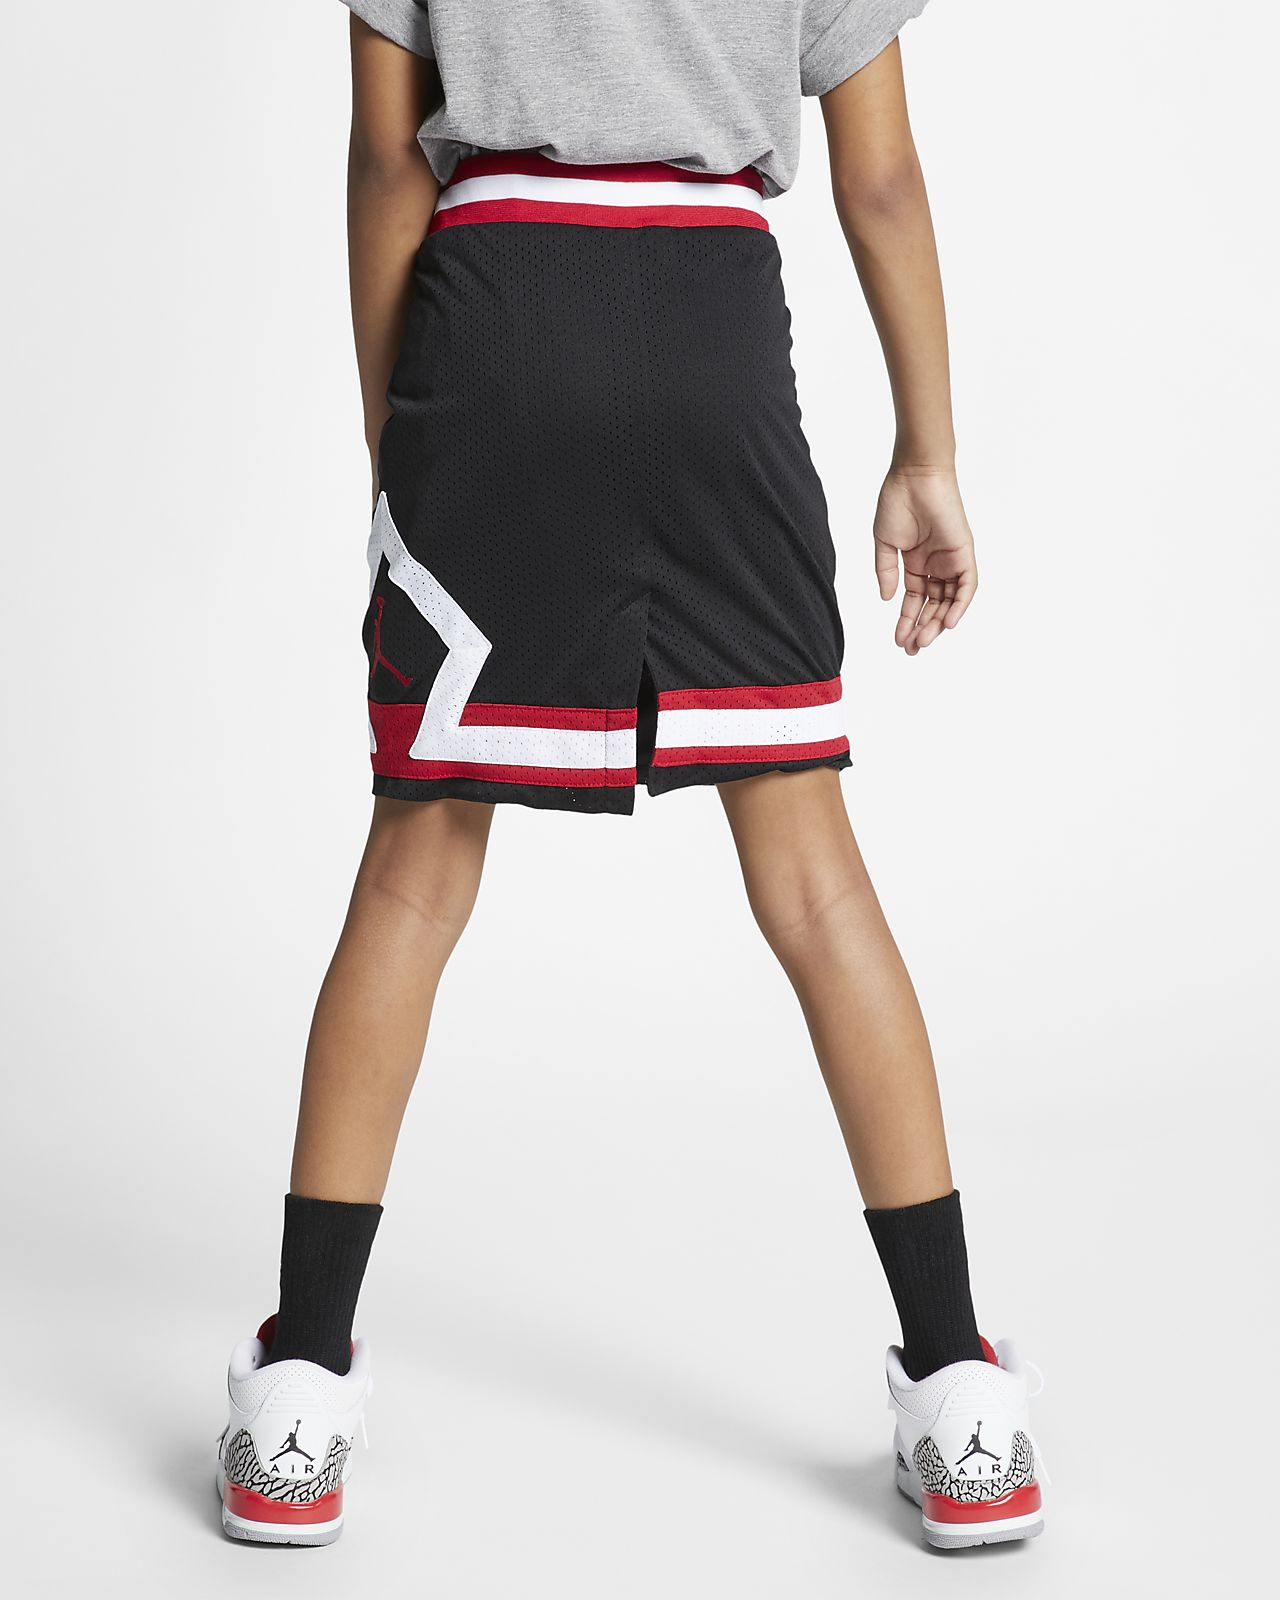 f9a17ee36 Jordan Older Kids' (Girls') Mesh Skirt. Nike.com GB